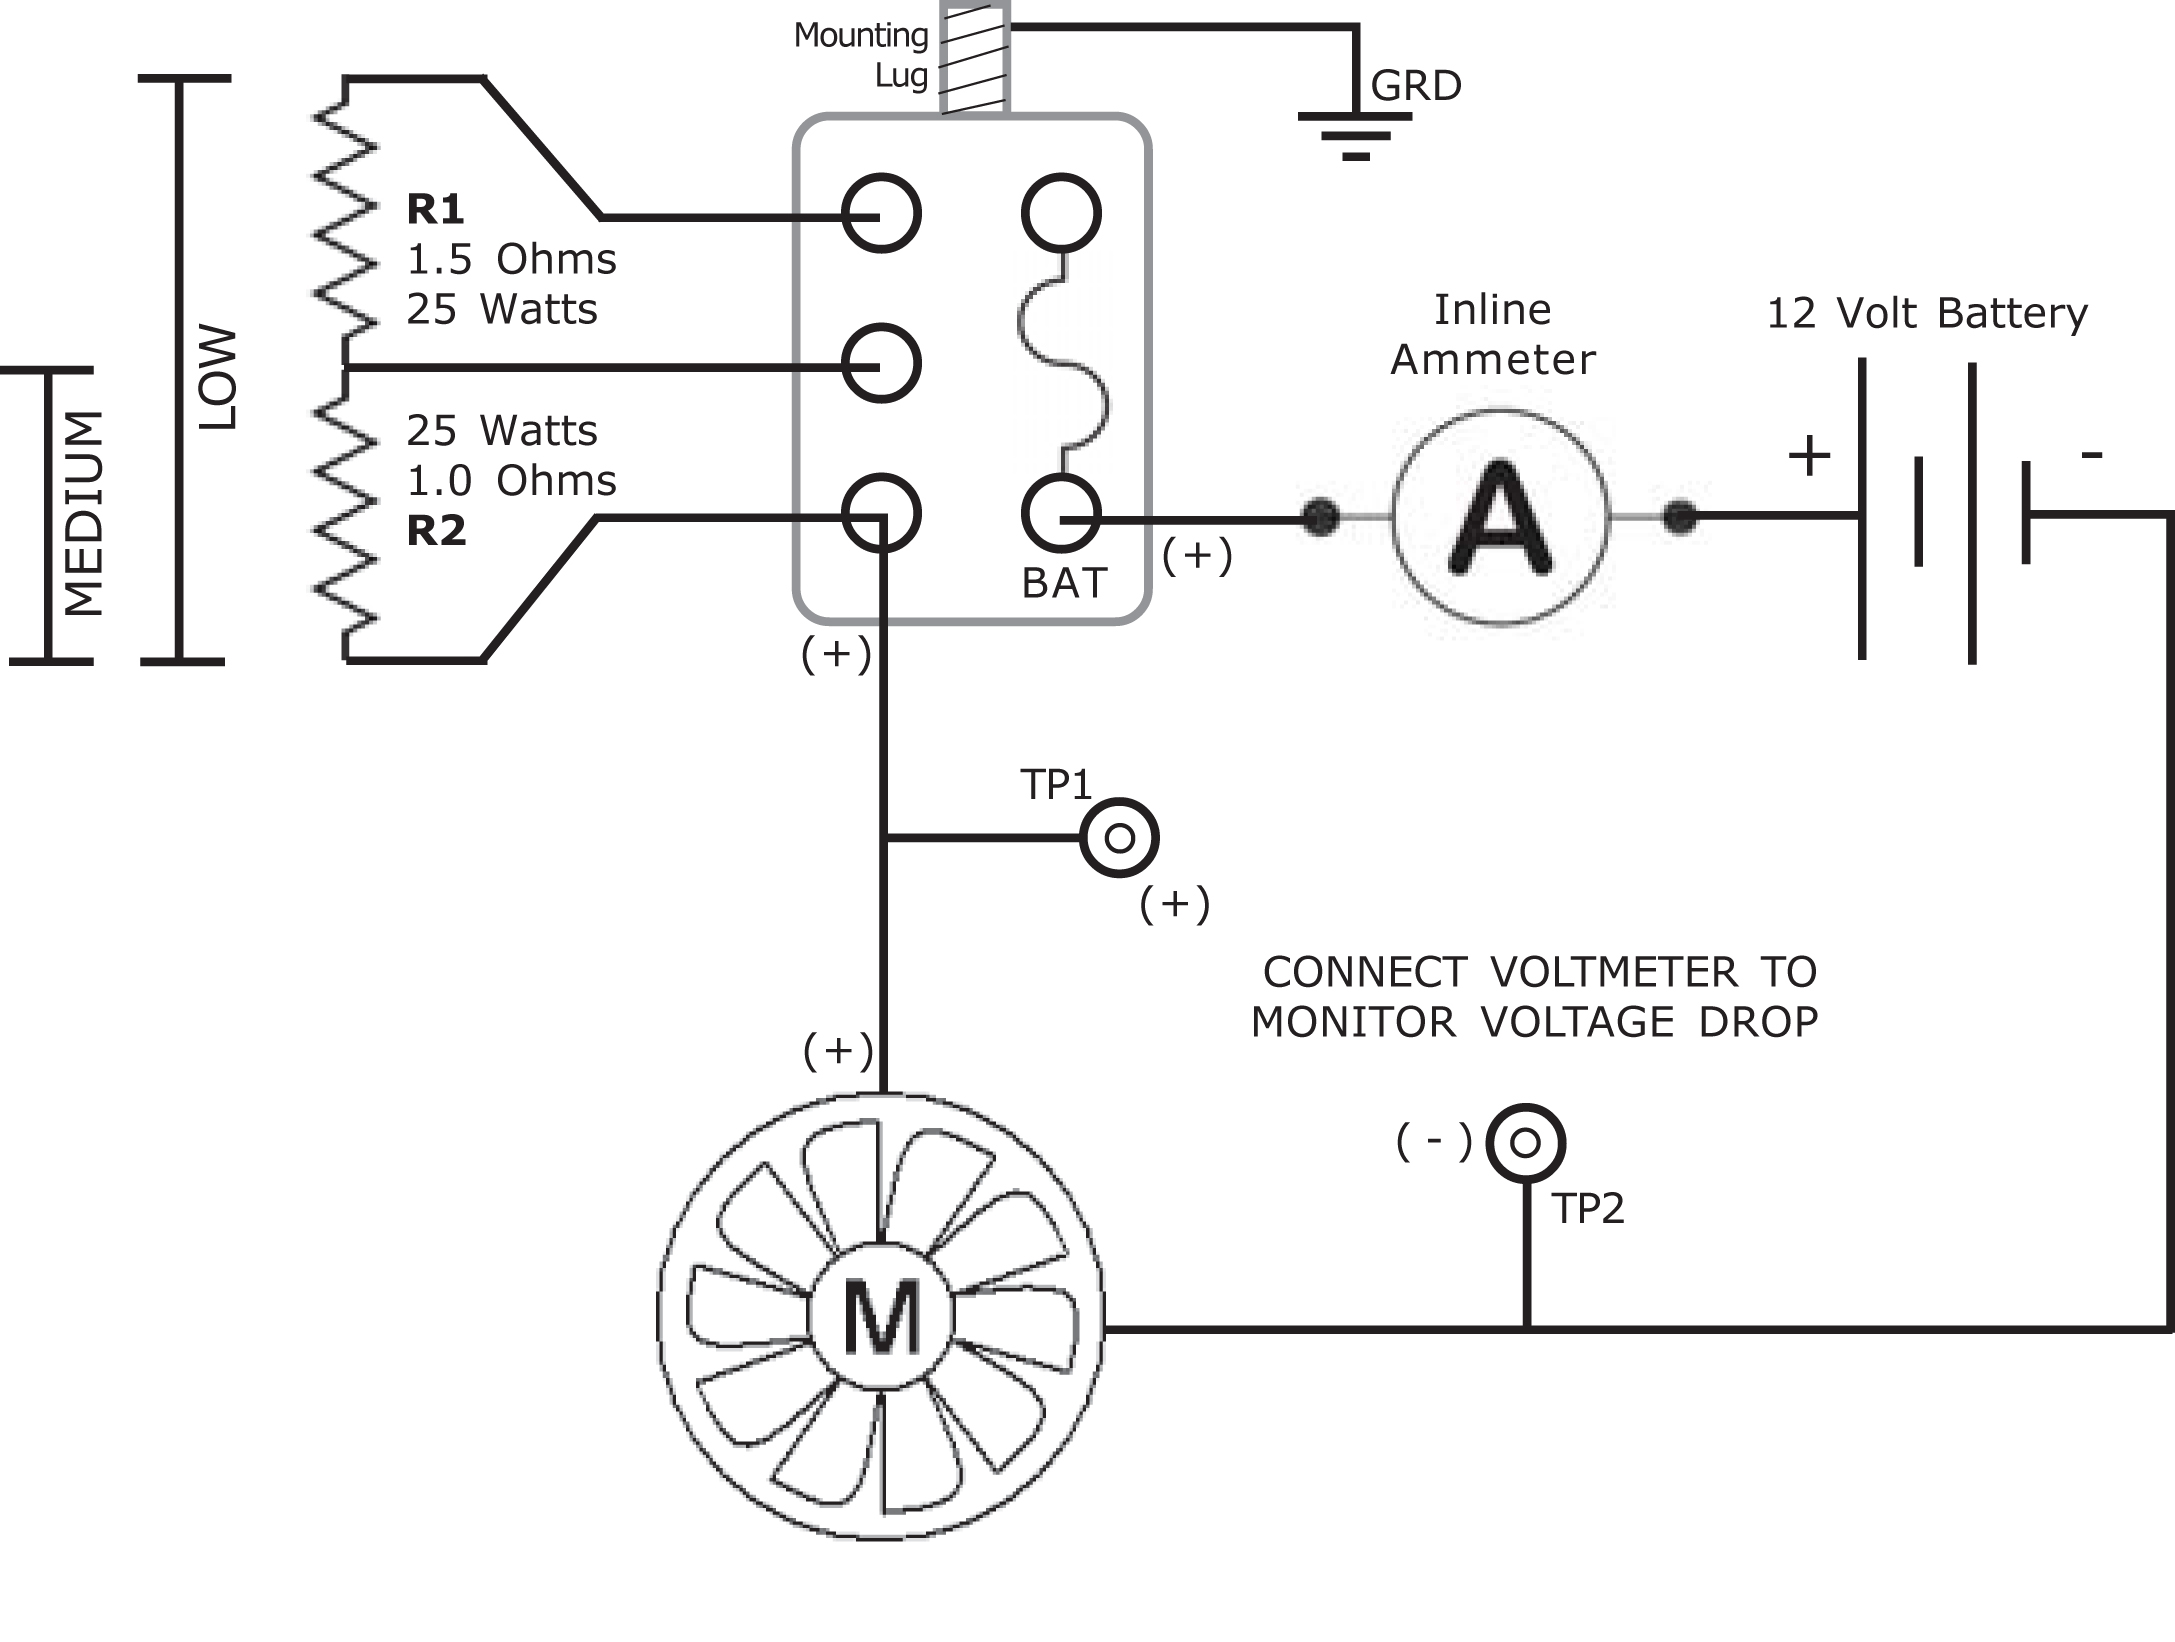 Making Your Vehicle Native 12 Volts